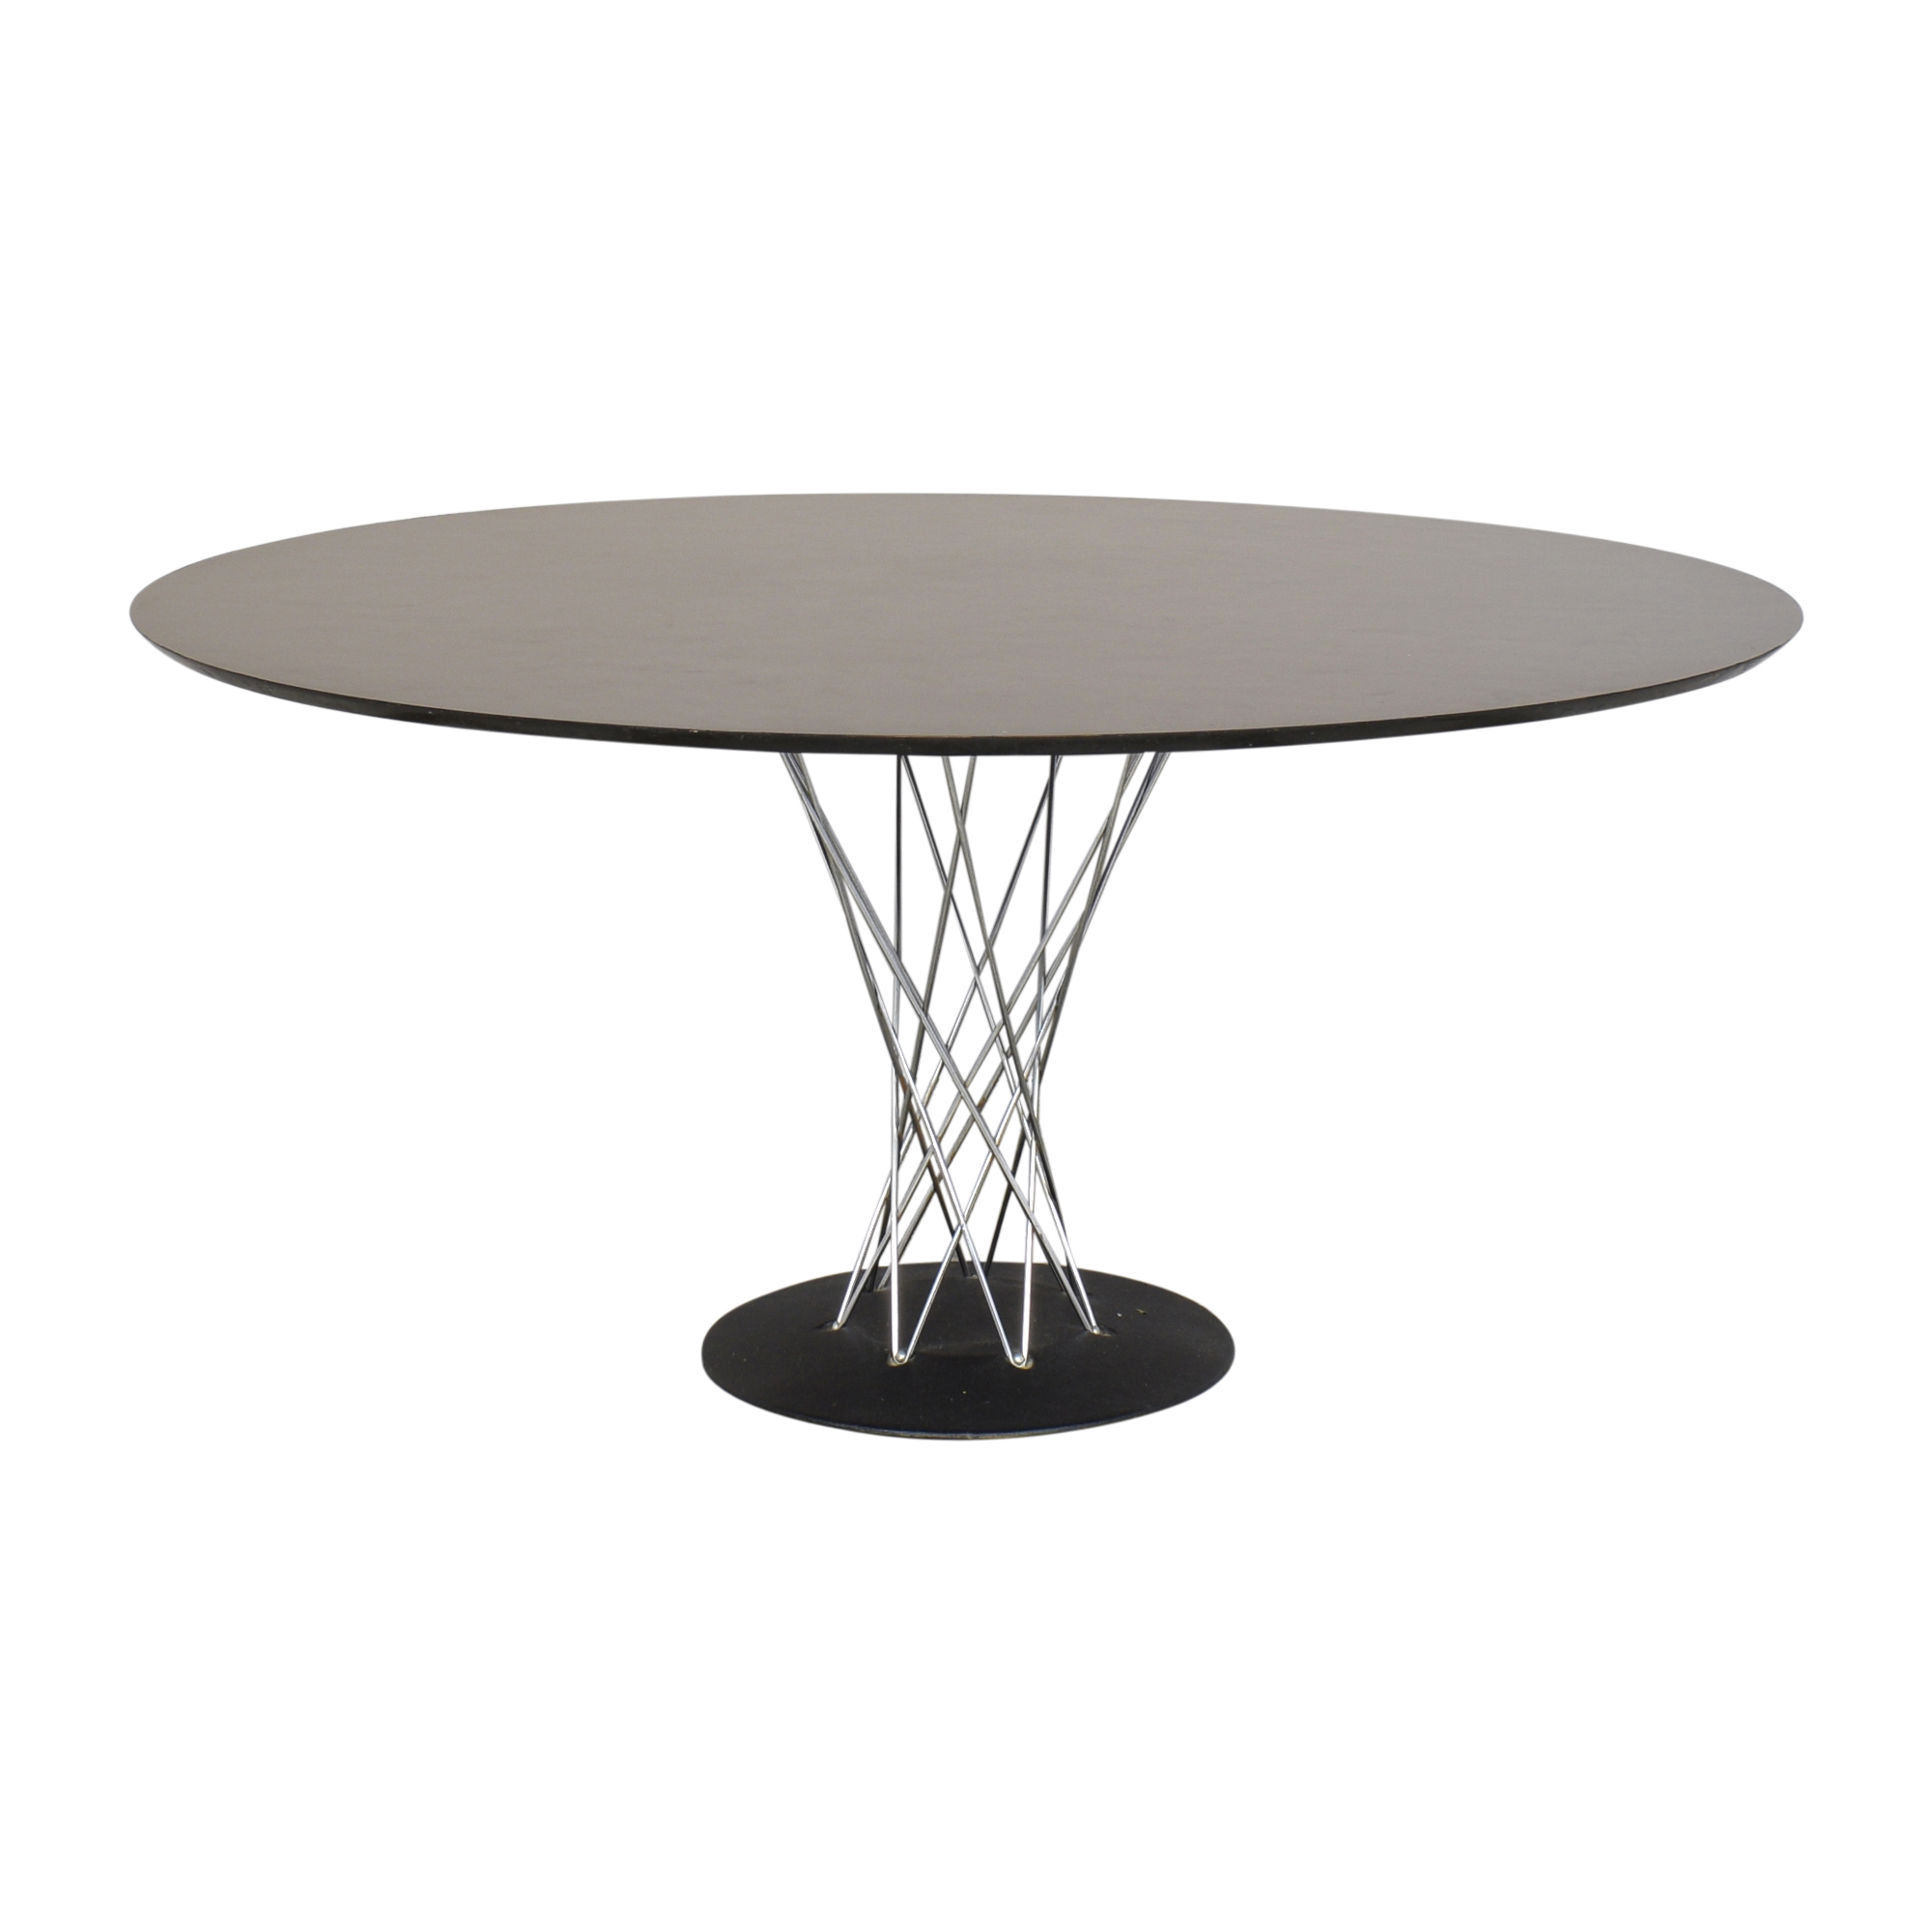 shop Modernica Modernica Cyclone Dining Table by Isamu Noguchi online